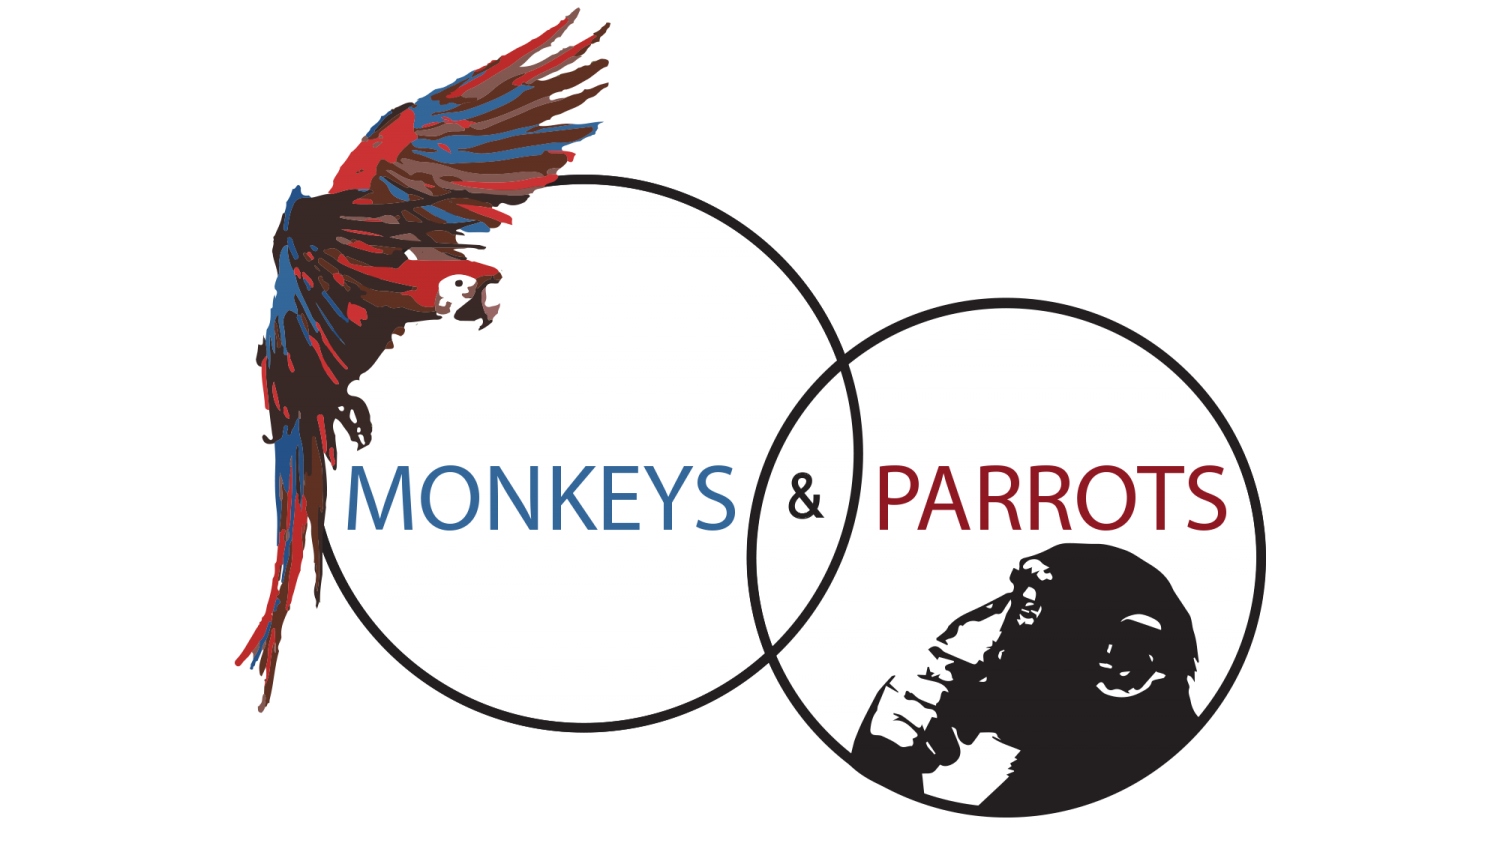 Monkeys and Parots